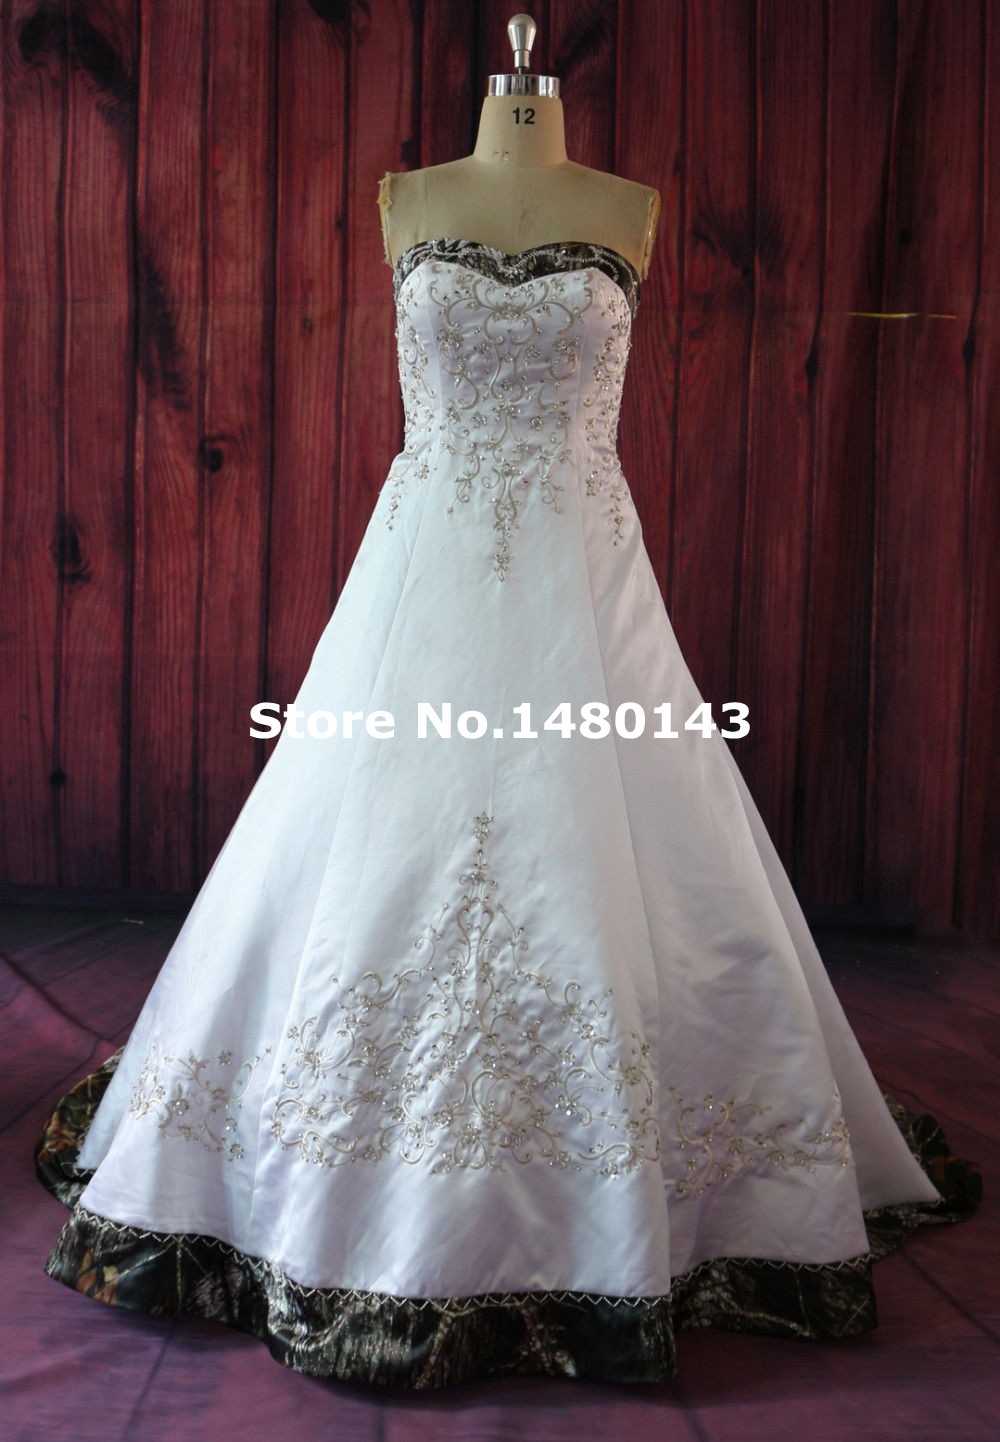 Wedding dresses america cheap discount wedding dresses for Wedding dresses in the usa